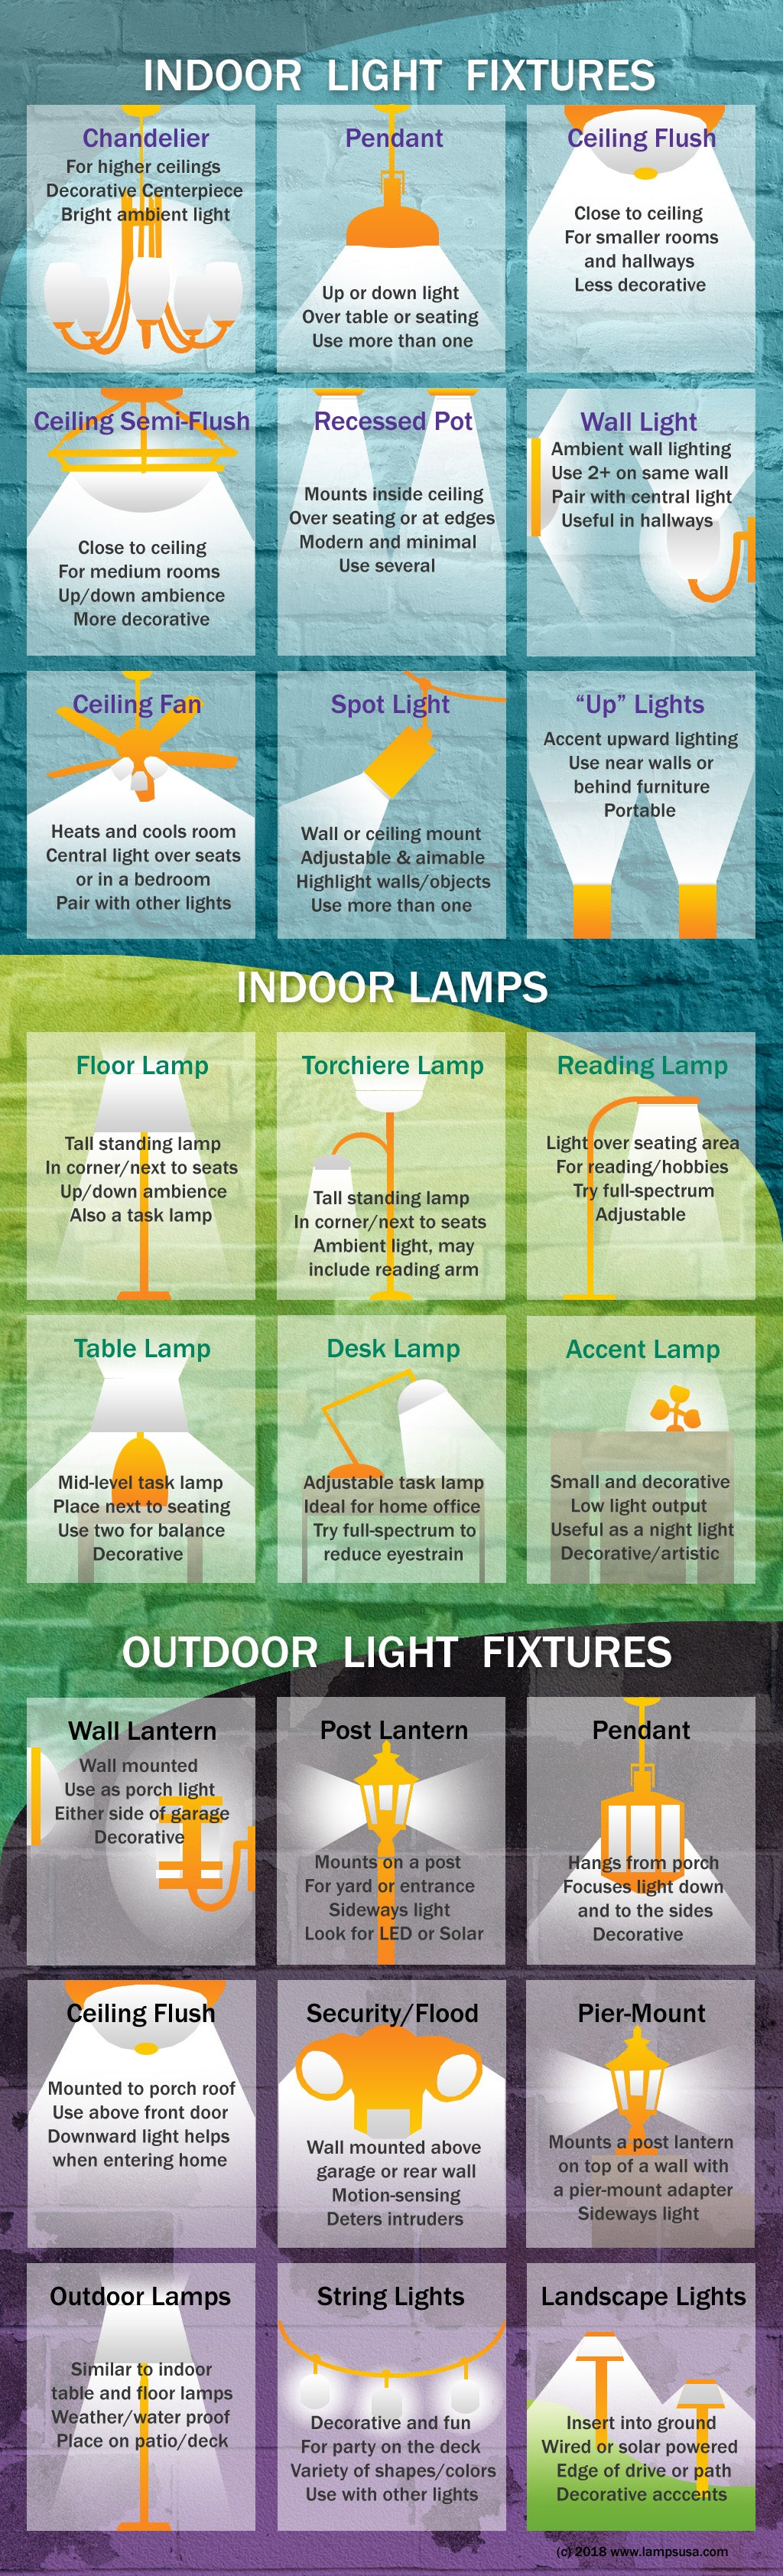 Light Fixtures: The Ultimate Guide to Room Lighting Fixtures - LampsUSA